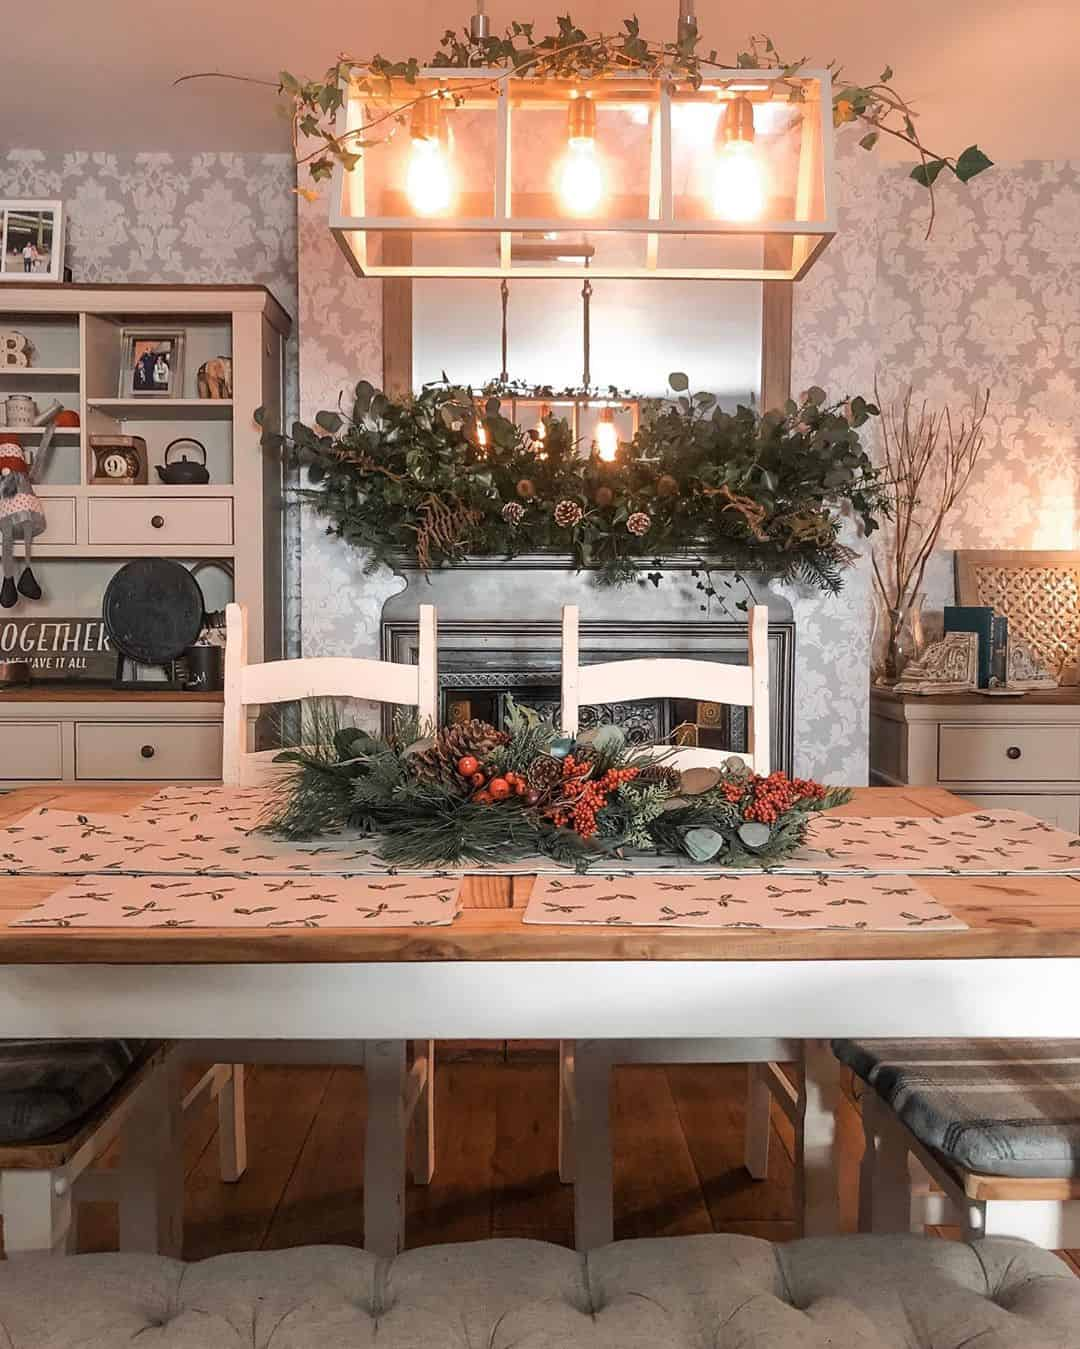 Christmas Decorations 2020: How To Create The Trendiest ...